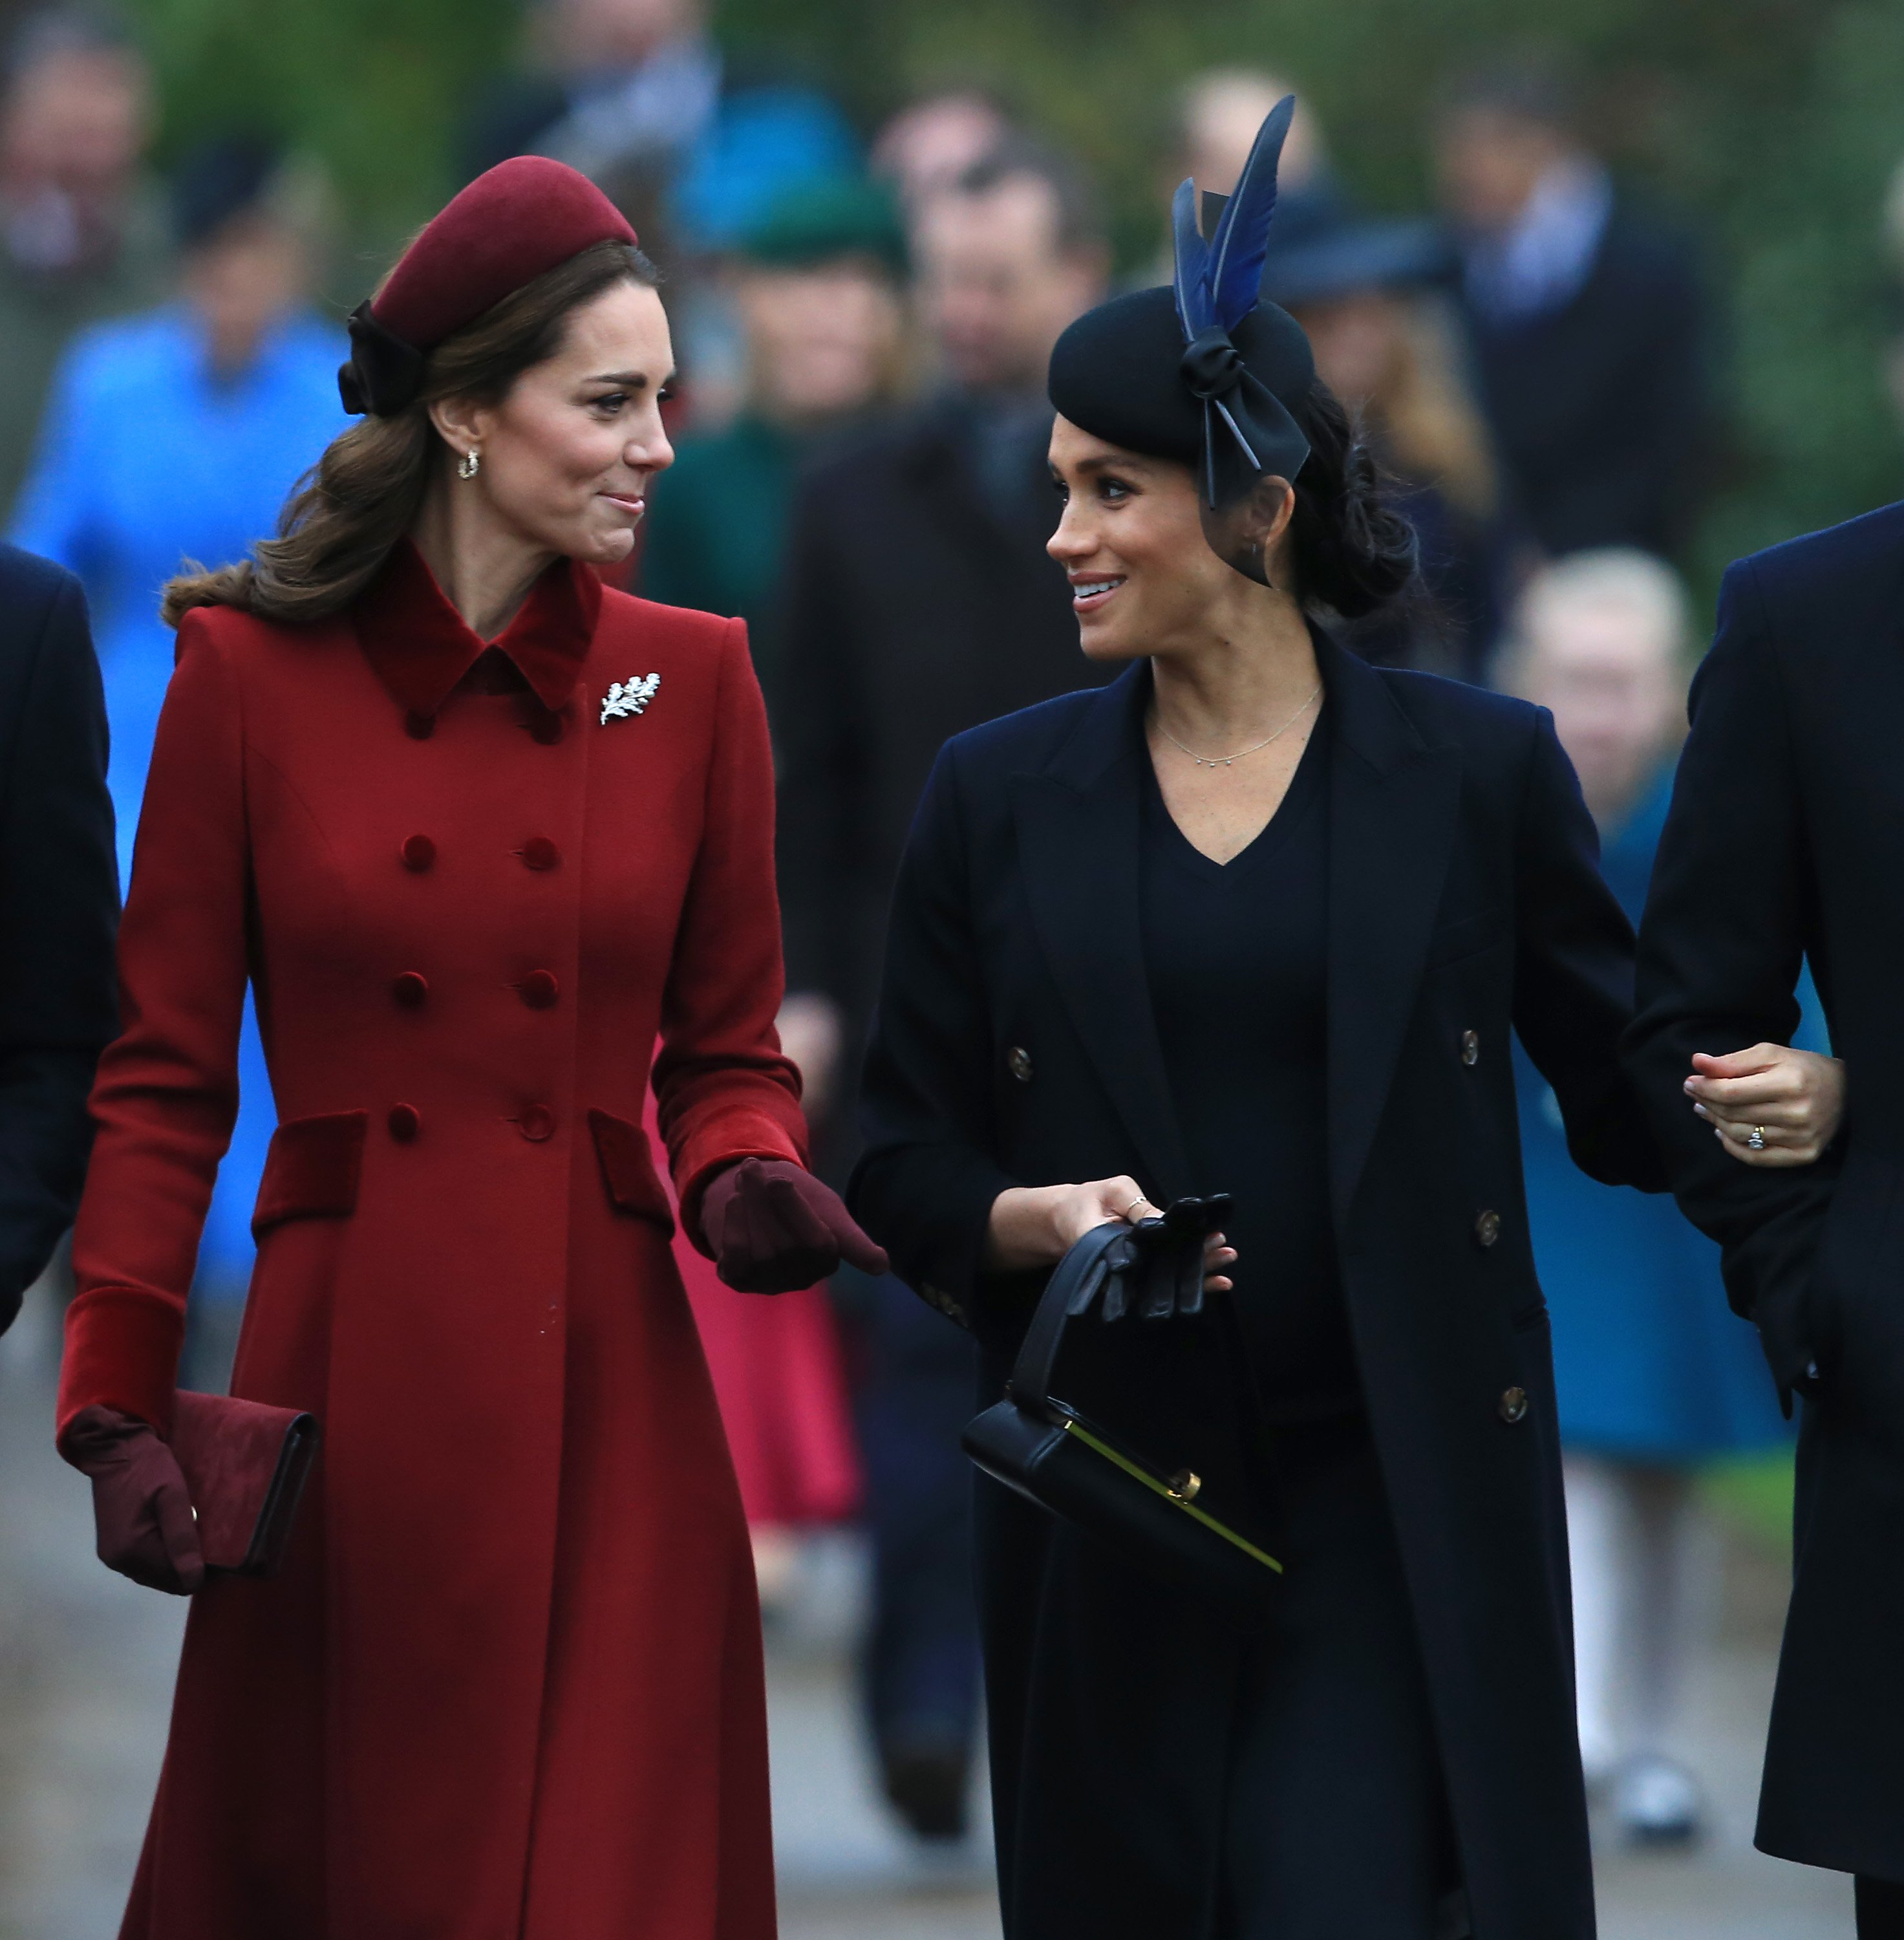 Kate Middleton and Meghan Markle attend the Christmas Day church service in December 2018 | Photo: Getty Images